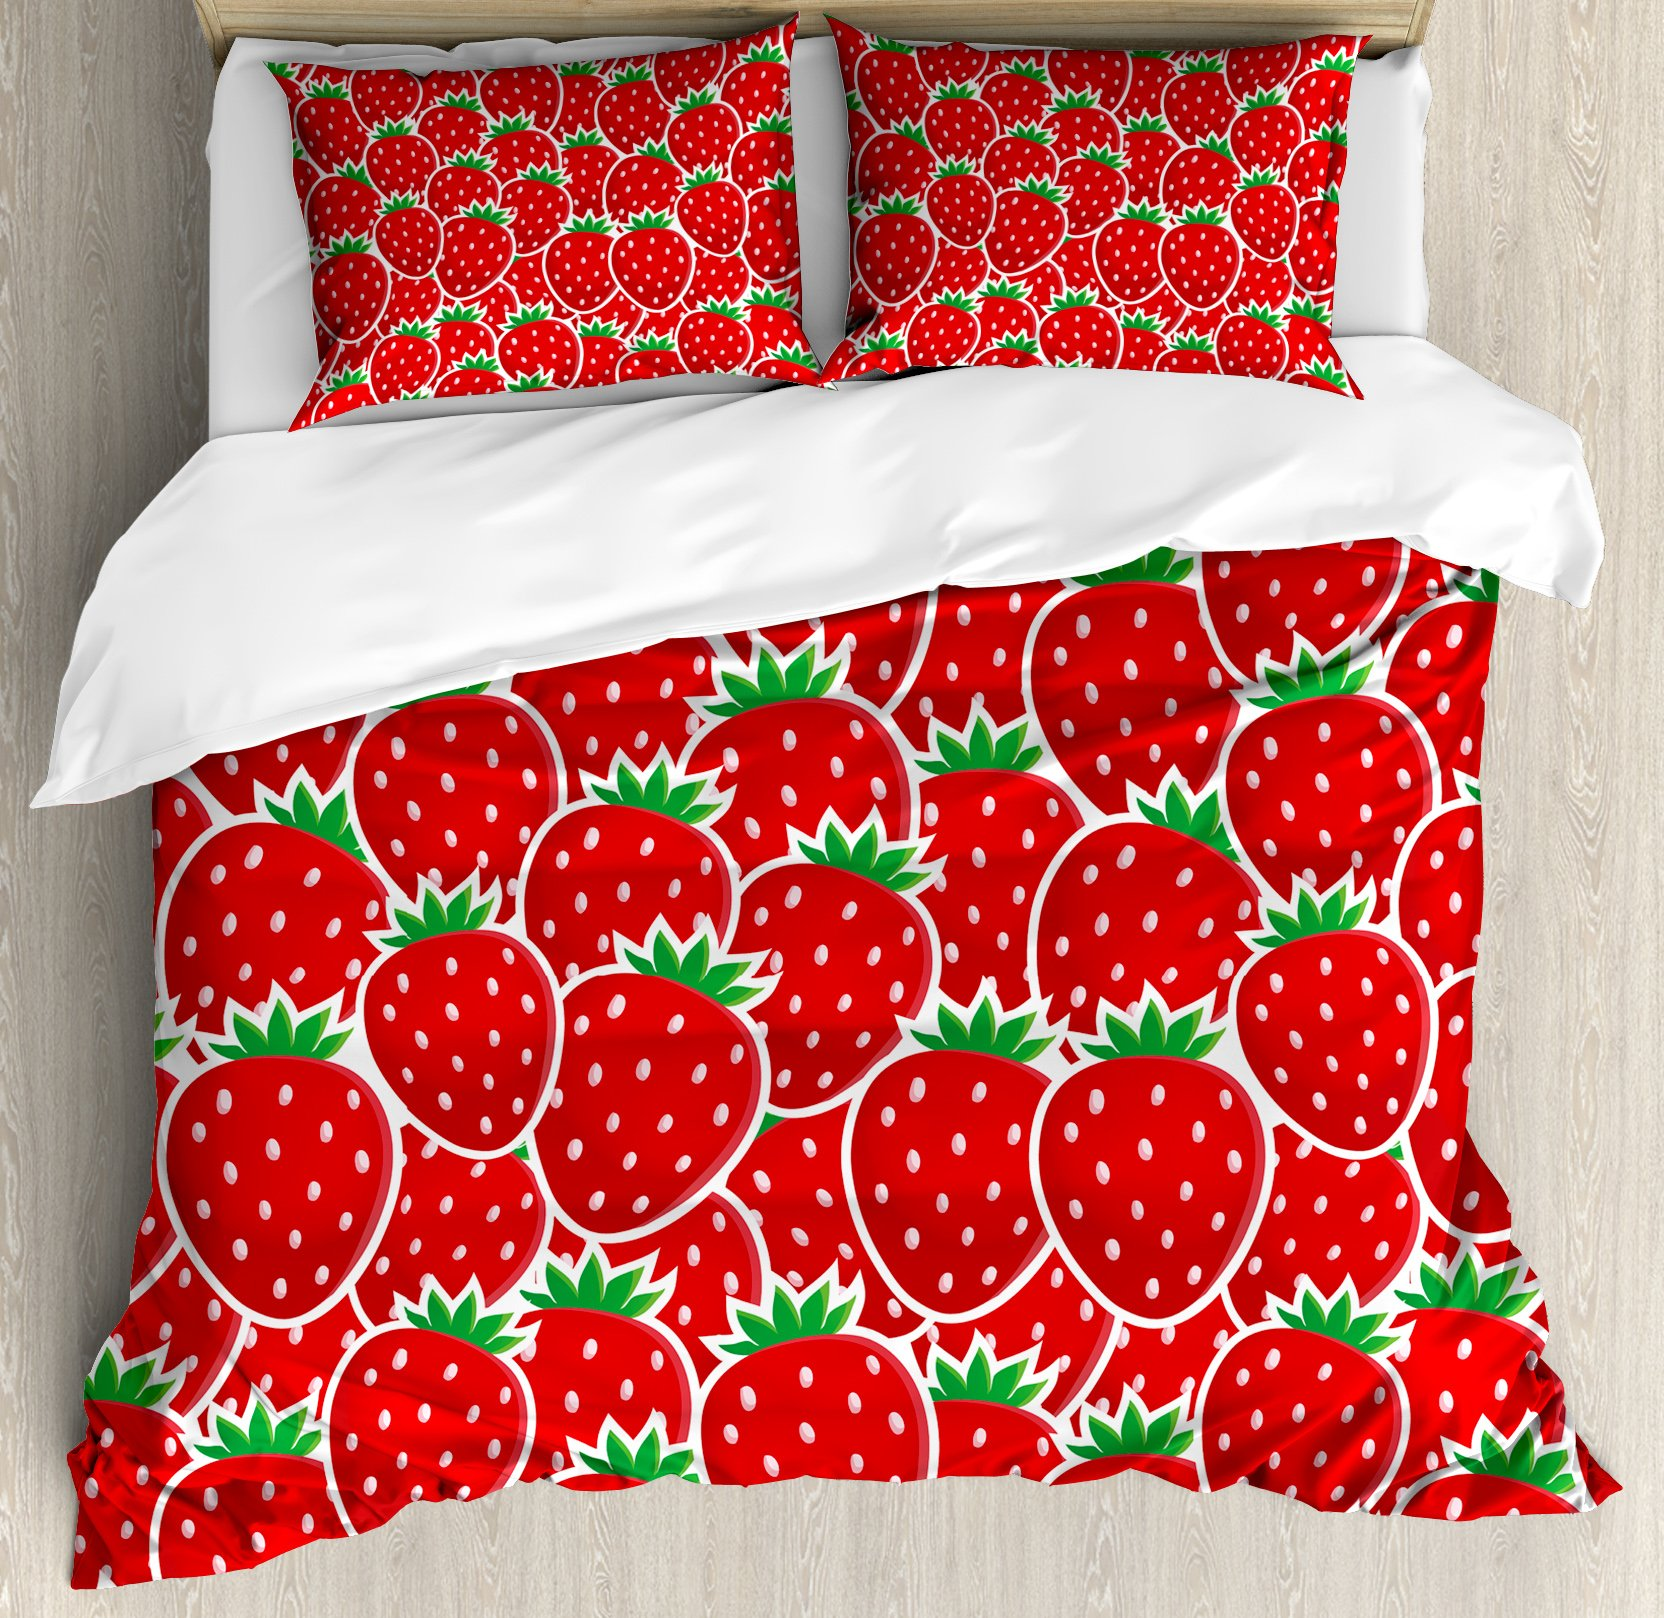 Fruits King Size Duvet Cover Set by Ambesonne, Strawberry Themed Botany Seeds Yummy Food Organic Growth Diet Health Print, Decorative 3 Piece Bedding Set with 2 Pillow Shams, Red Hunter Green